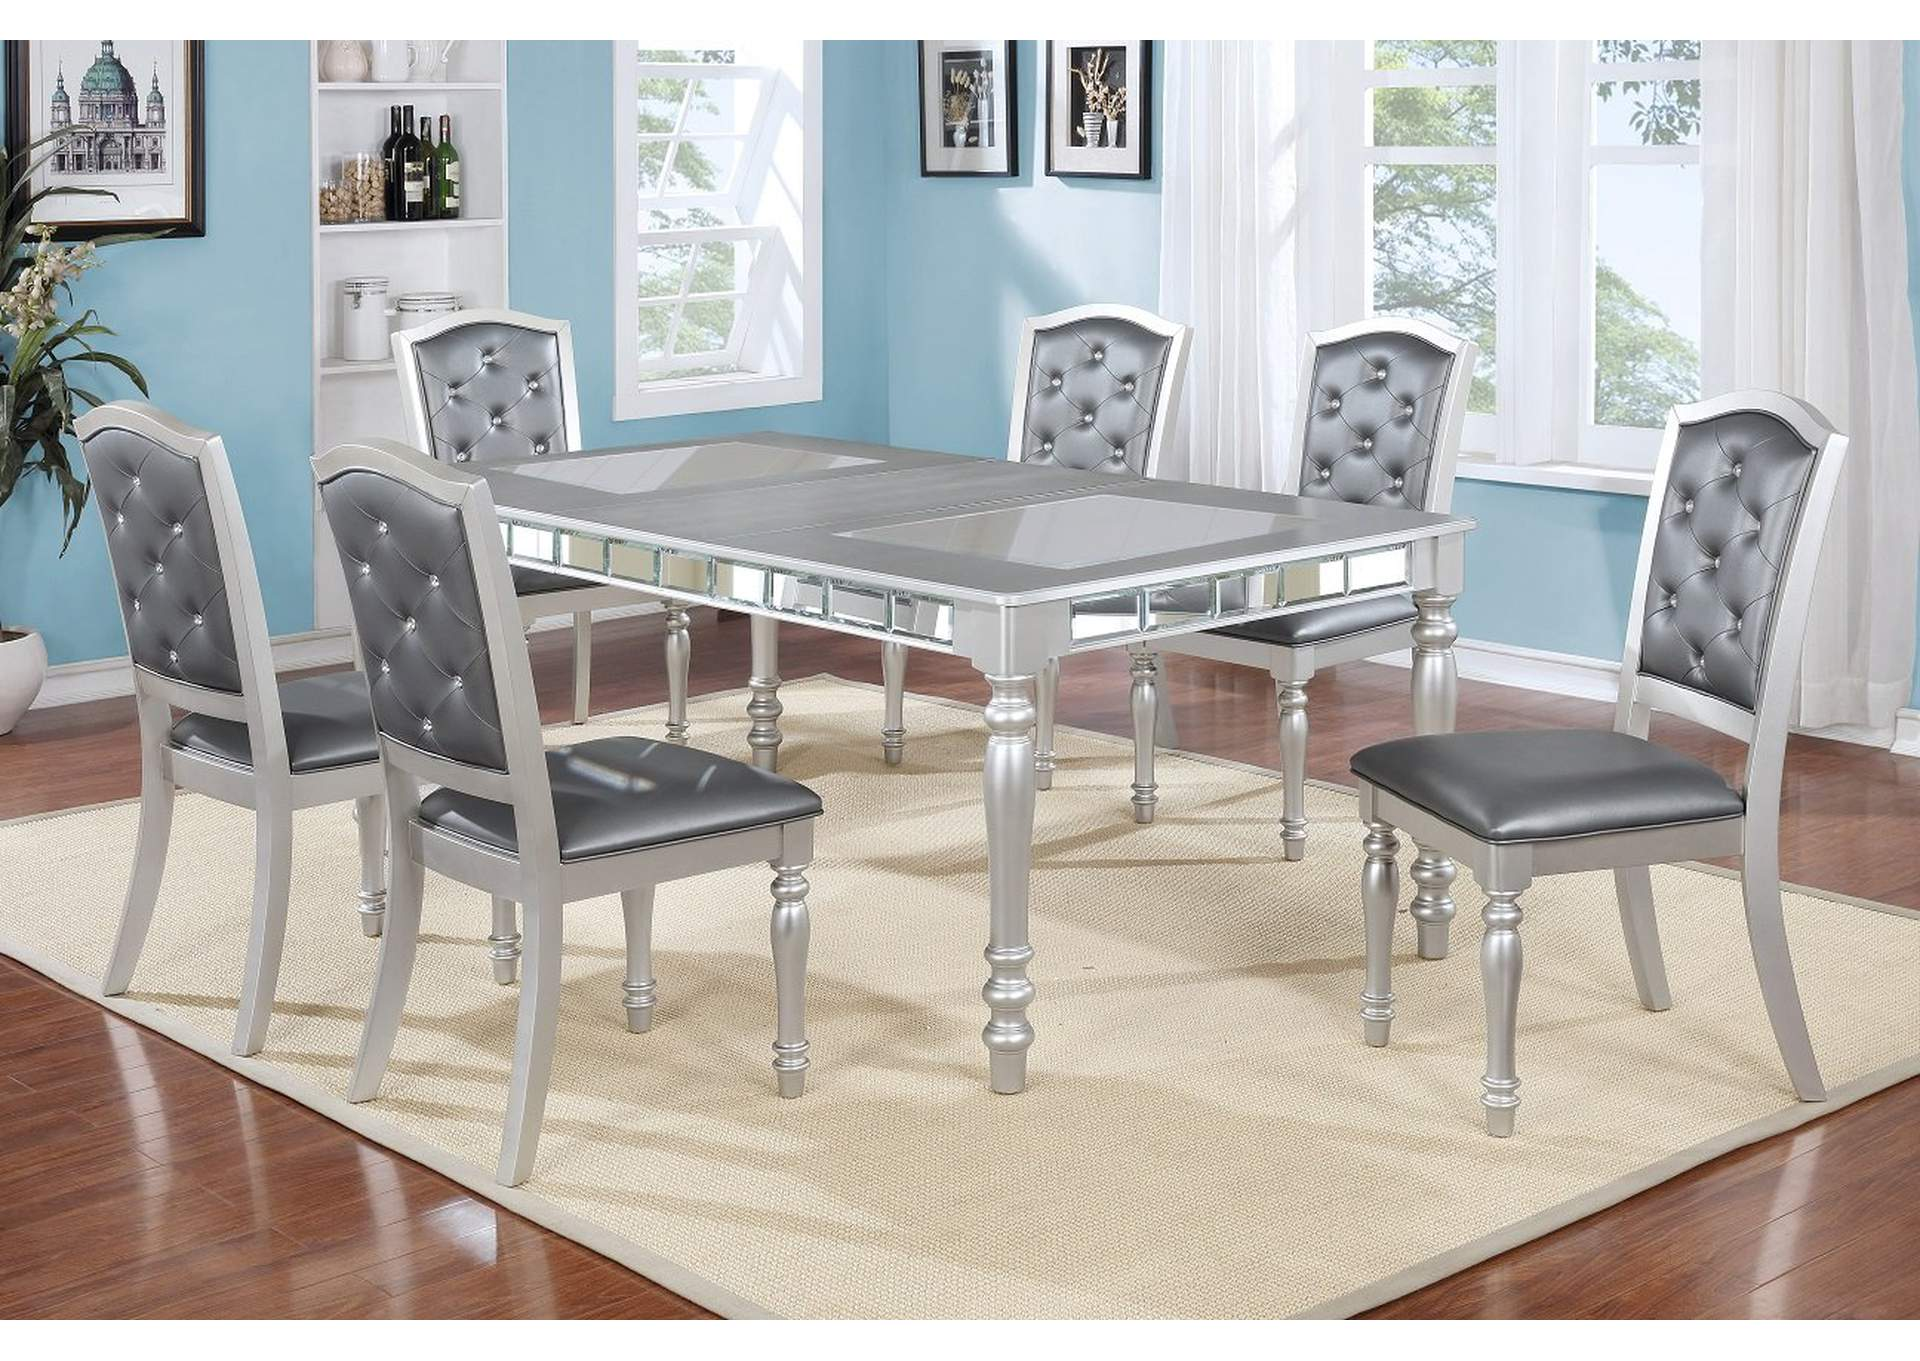 432064 Silver Shimmer Mirror Insert Dining Table W 18 Leaf